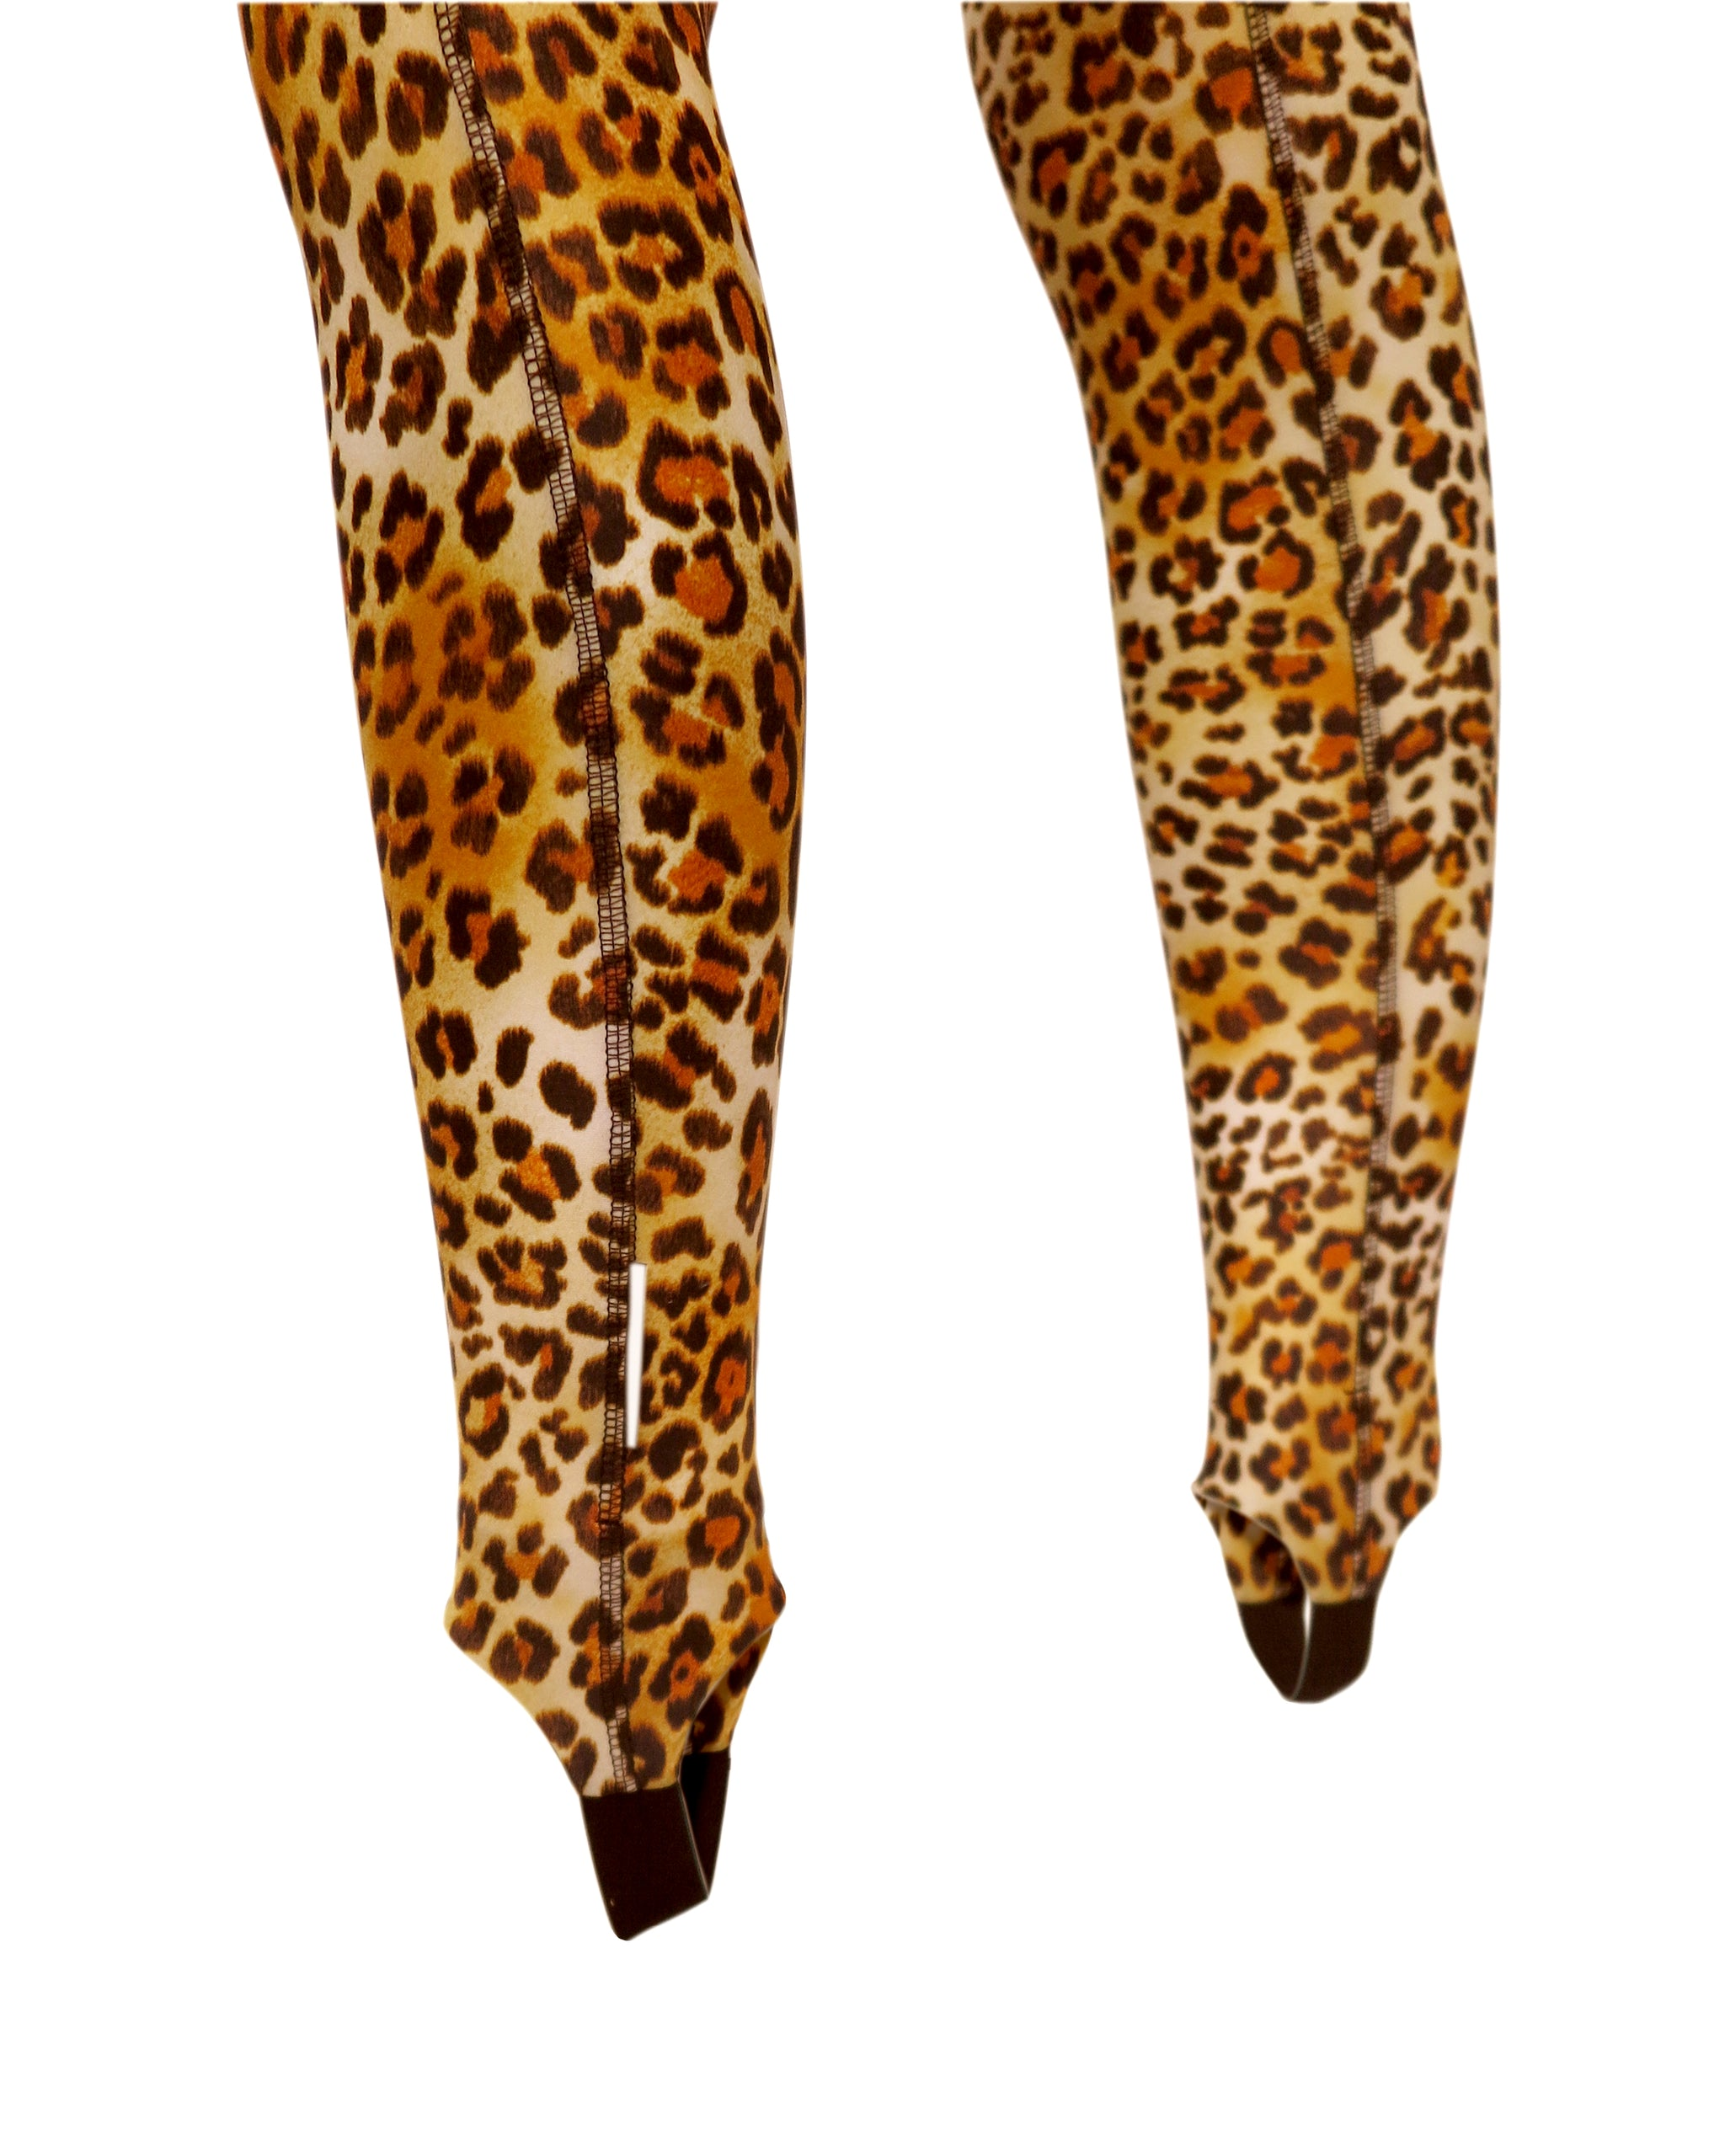 Cycling Tights | Signature Leopard